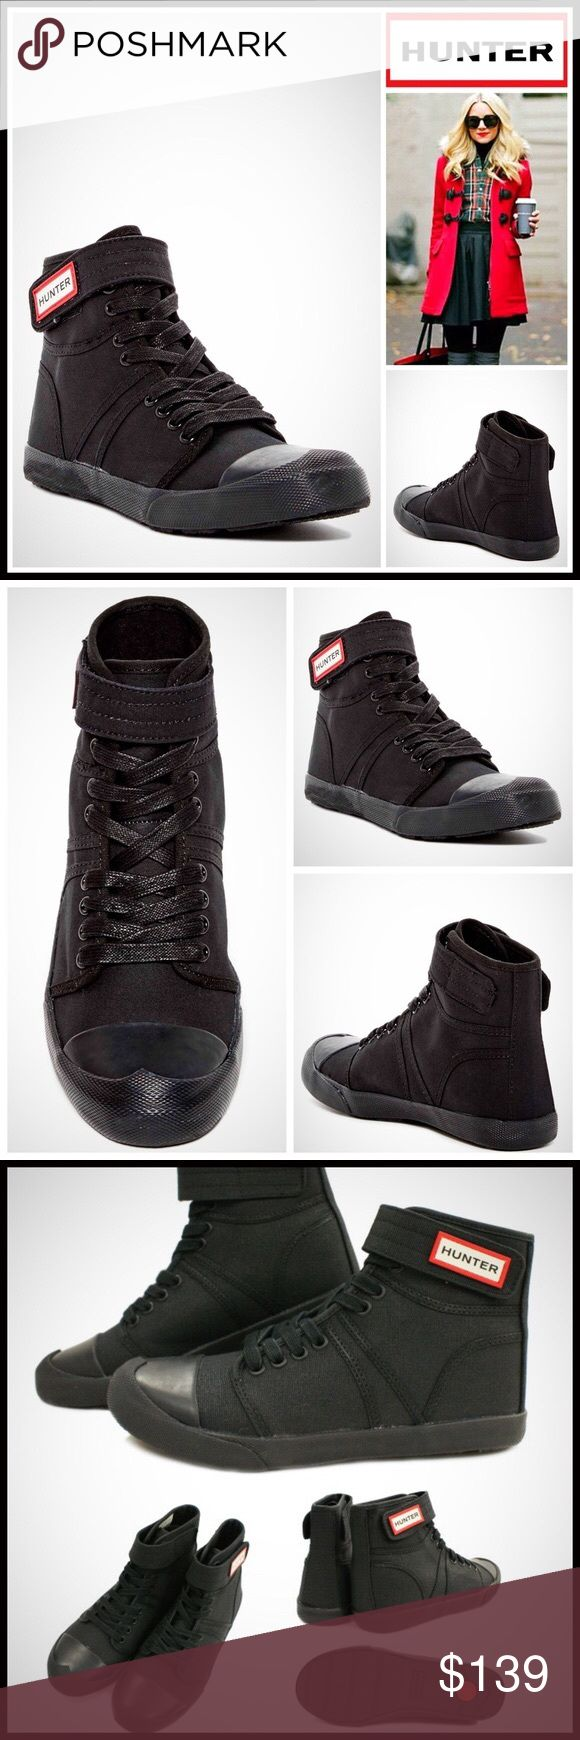 "⭐⭐ HUNTER ORIGINAL SNEAKER BOOTIE HUNTER ORIGINAL SNEAKER BOOTIE   SIZING- True to size. Whole sizes only; for 1/2 sizes, order next size down  COLOR- BLACK   ABOUT THIS ITEM   * Round toe w/bumper   * Bootie / Hi-top silhouette   * Lace-up & hook-and-loop closure   * Removable padded insole   * Grip sole, approx .50"" heel   * Logo detail   MATERIAL Canvas upper, rubber sole   ❌NO TRADES❌ ✅BUNDLE DISCOUNTS✅  OFFERS CONSIDERED (Via the offer button only)   SEARCH WORDS # Hunter Boots Shoes…"